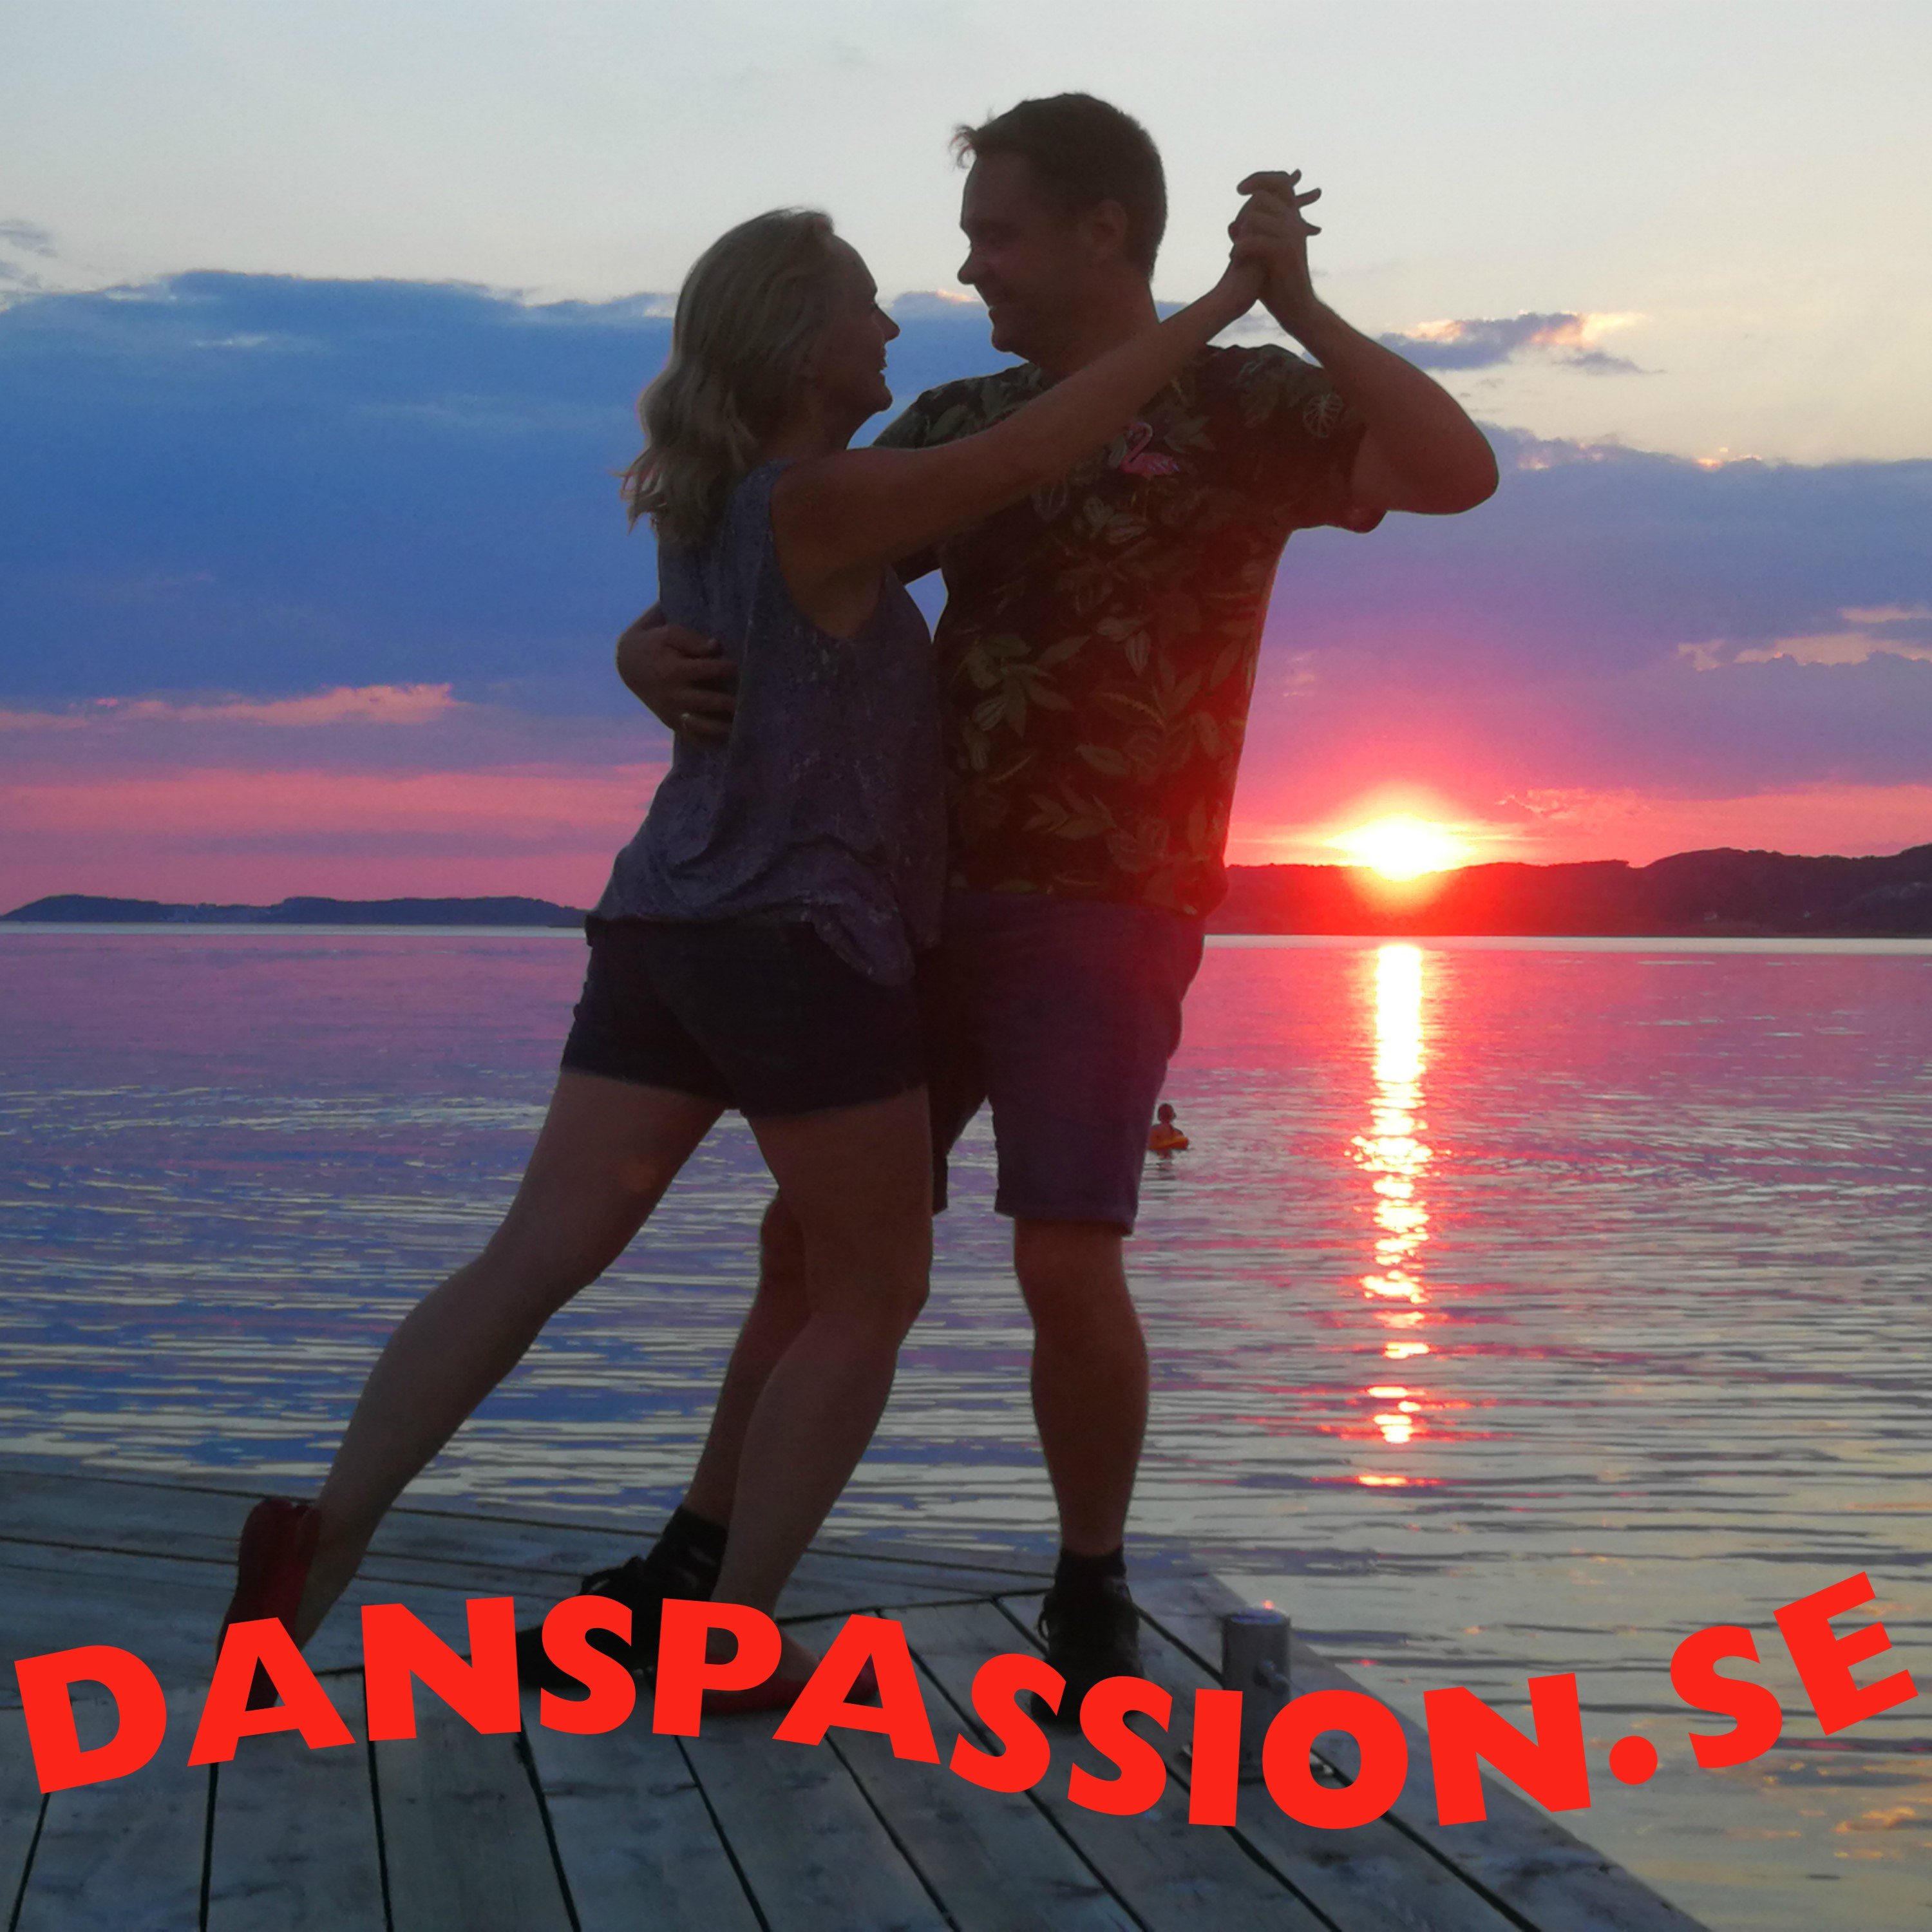 Danspassion